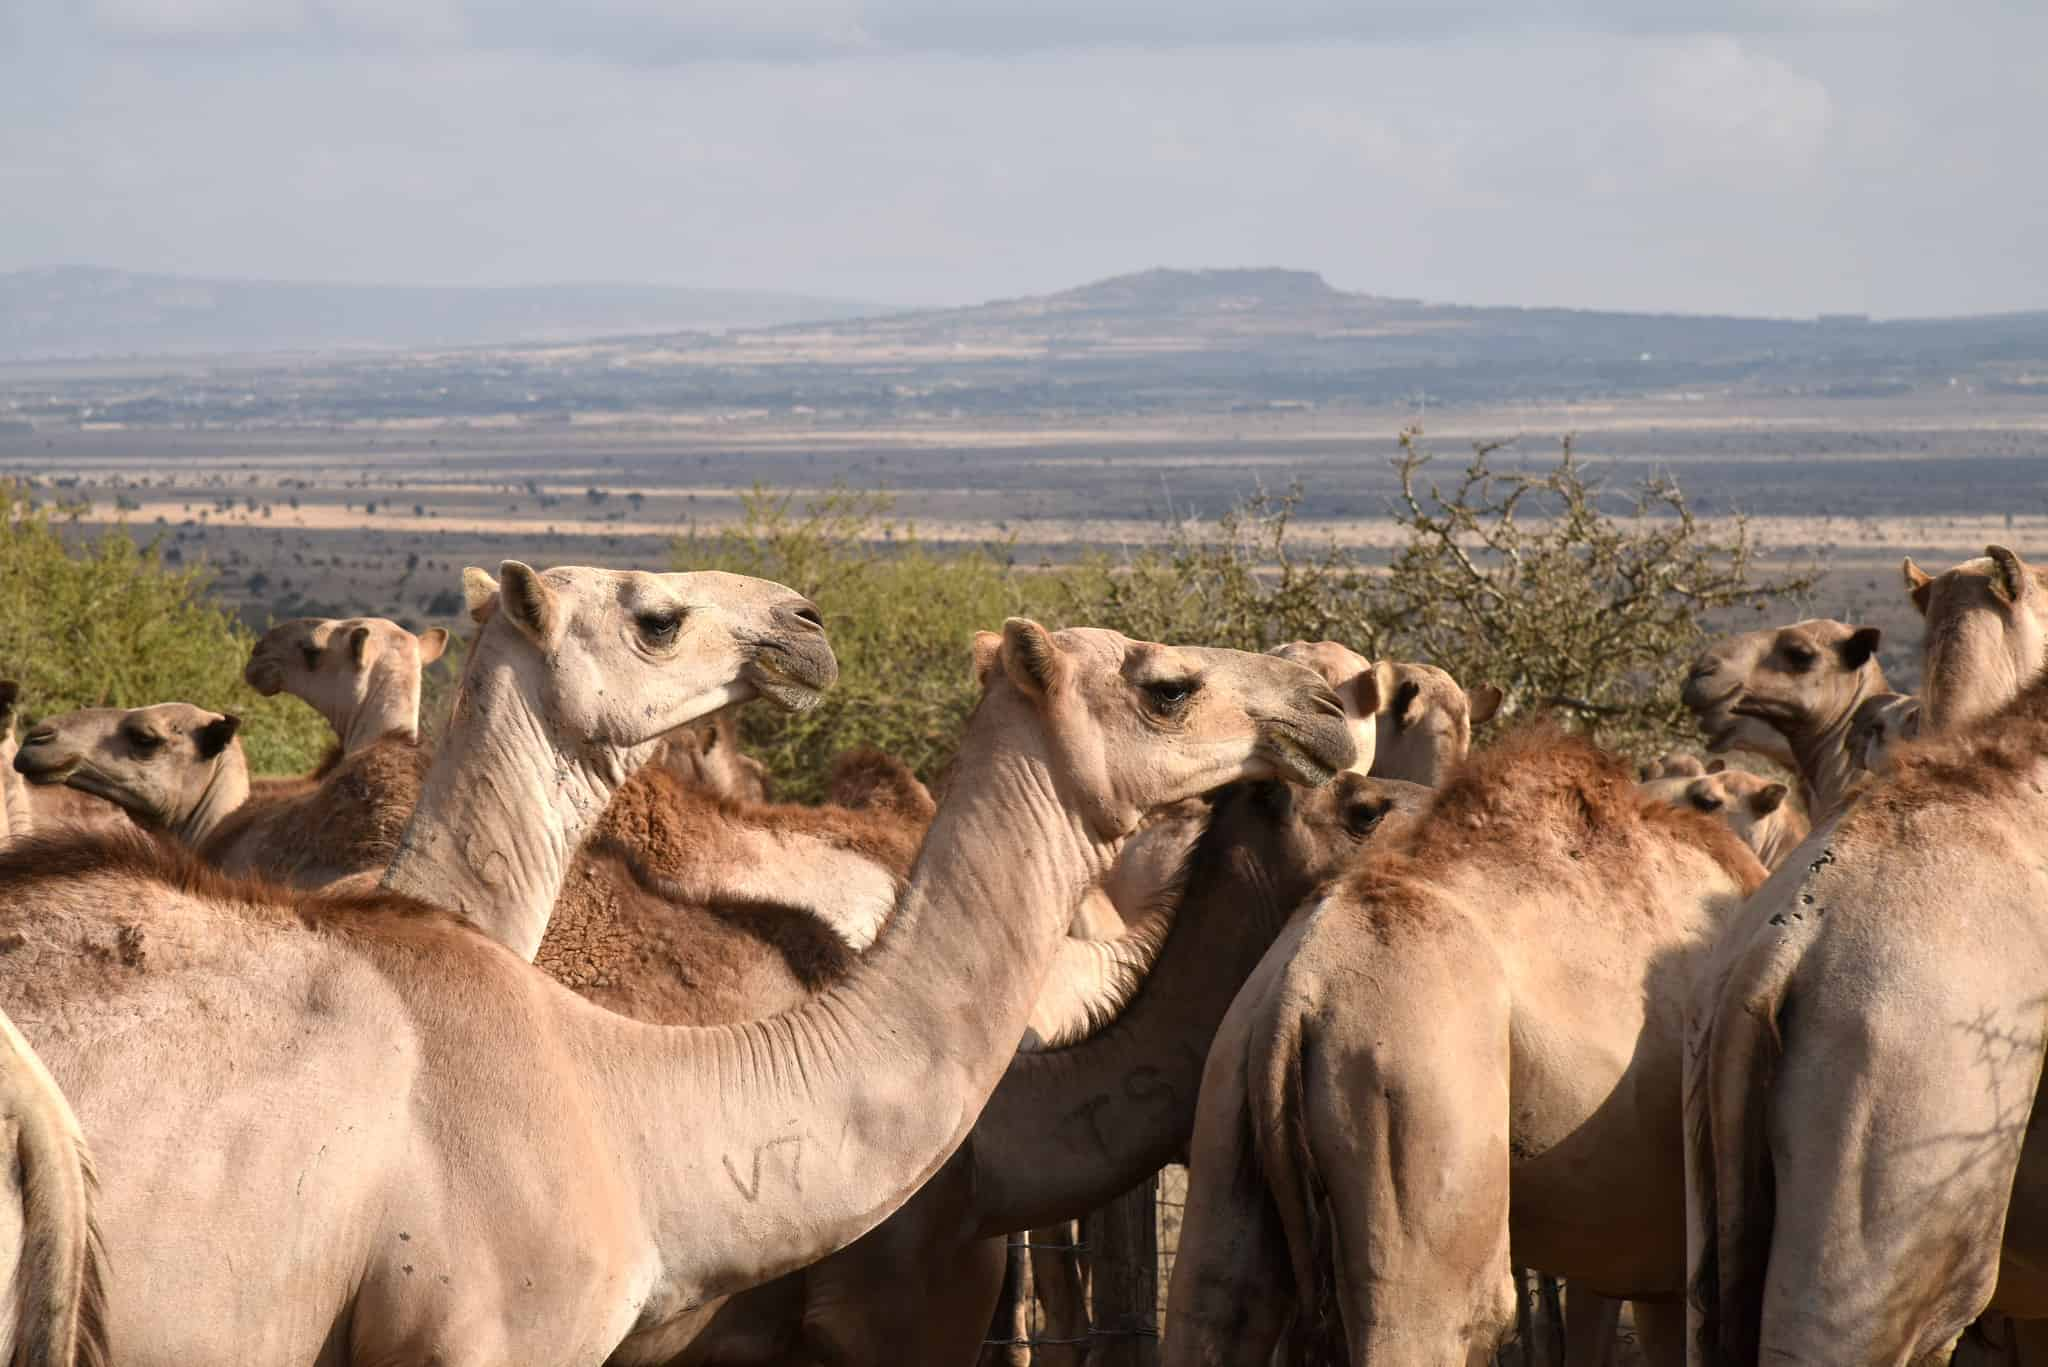 Camels drinking at a water pan in Wajir county in Kenya (photo credit: ILRI/George Wamwere-Njoroge).